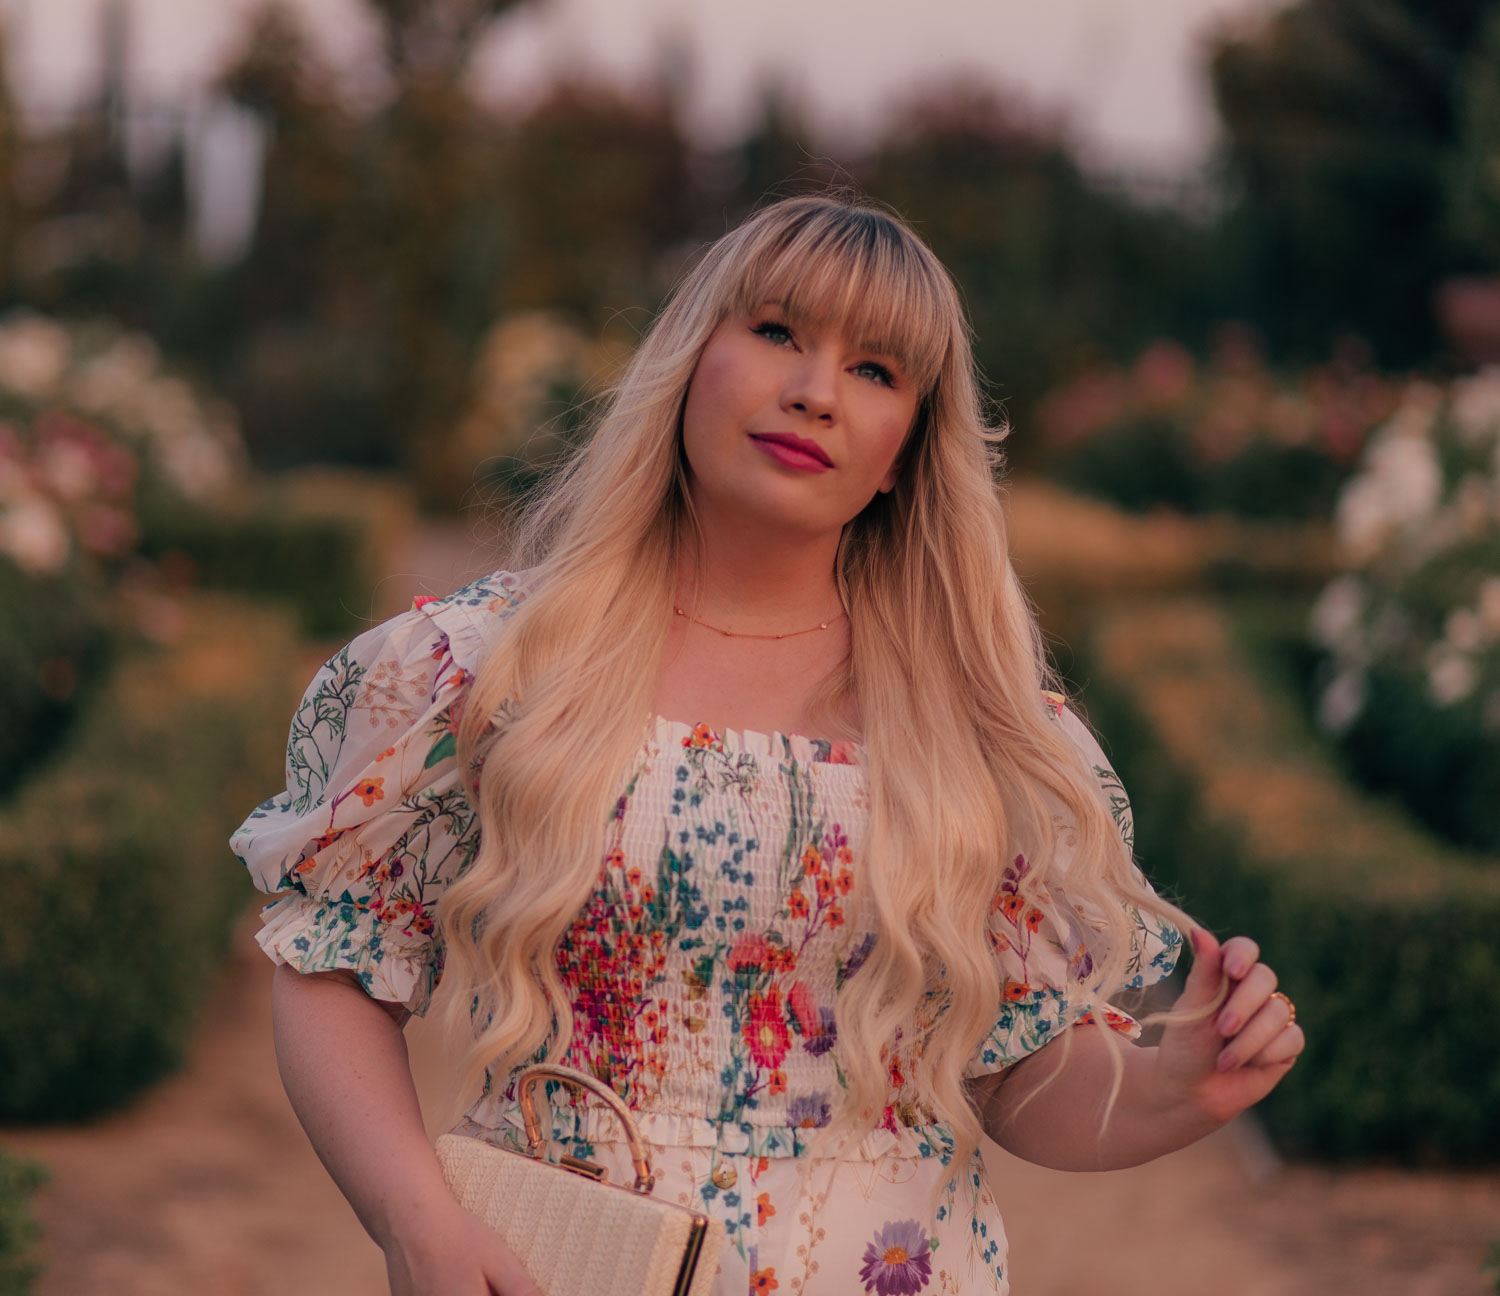 Feminine Fashion Blogger Elizabeth Hugen of Lizzie in Lace styles a floral top and skirt set from Chicwish for summer along with a dainty gold necklace